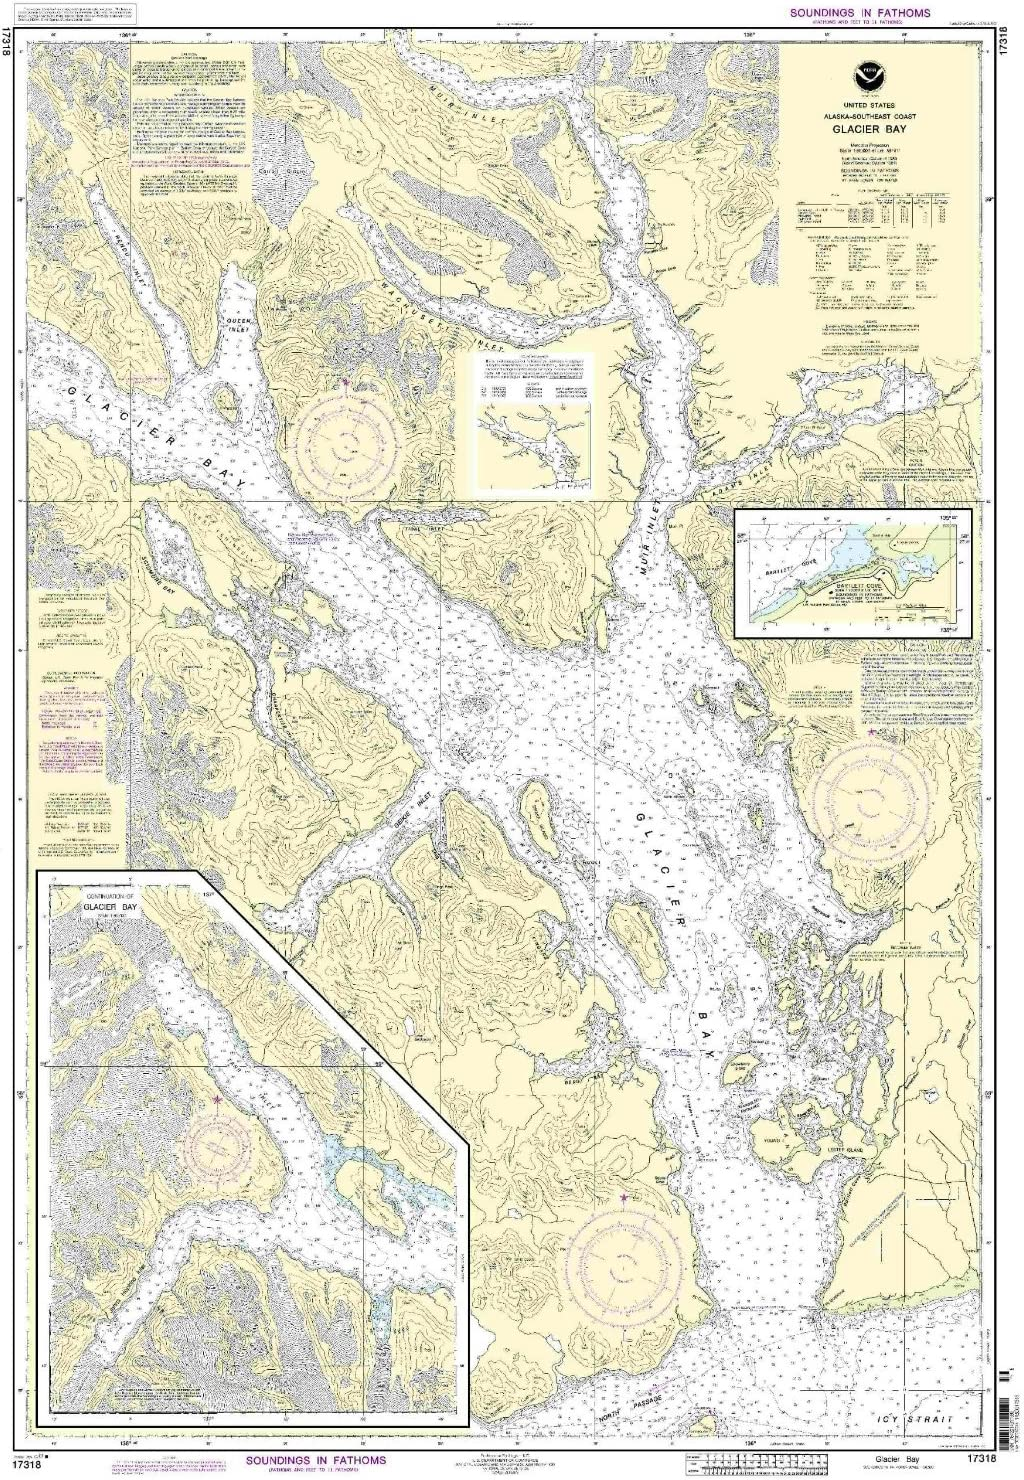 NOAA Print-On-Demand chart Super sale period limited Glacier Bay Edit Cove to All items in the store 8th Bartlett